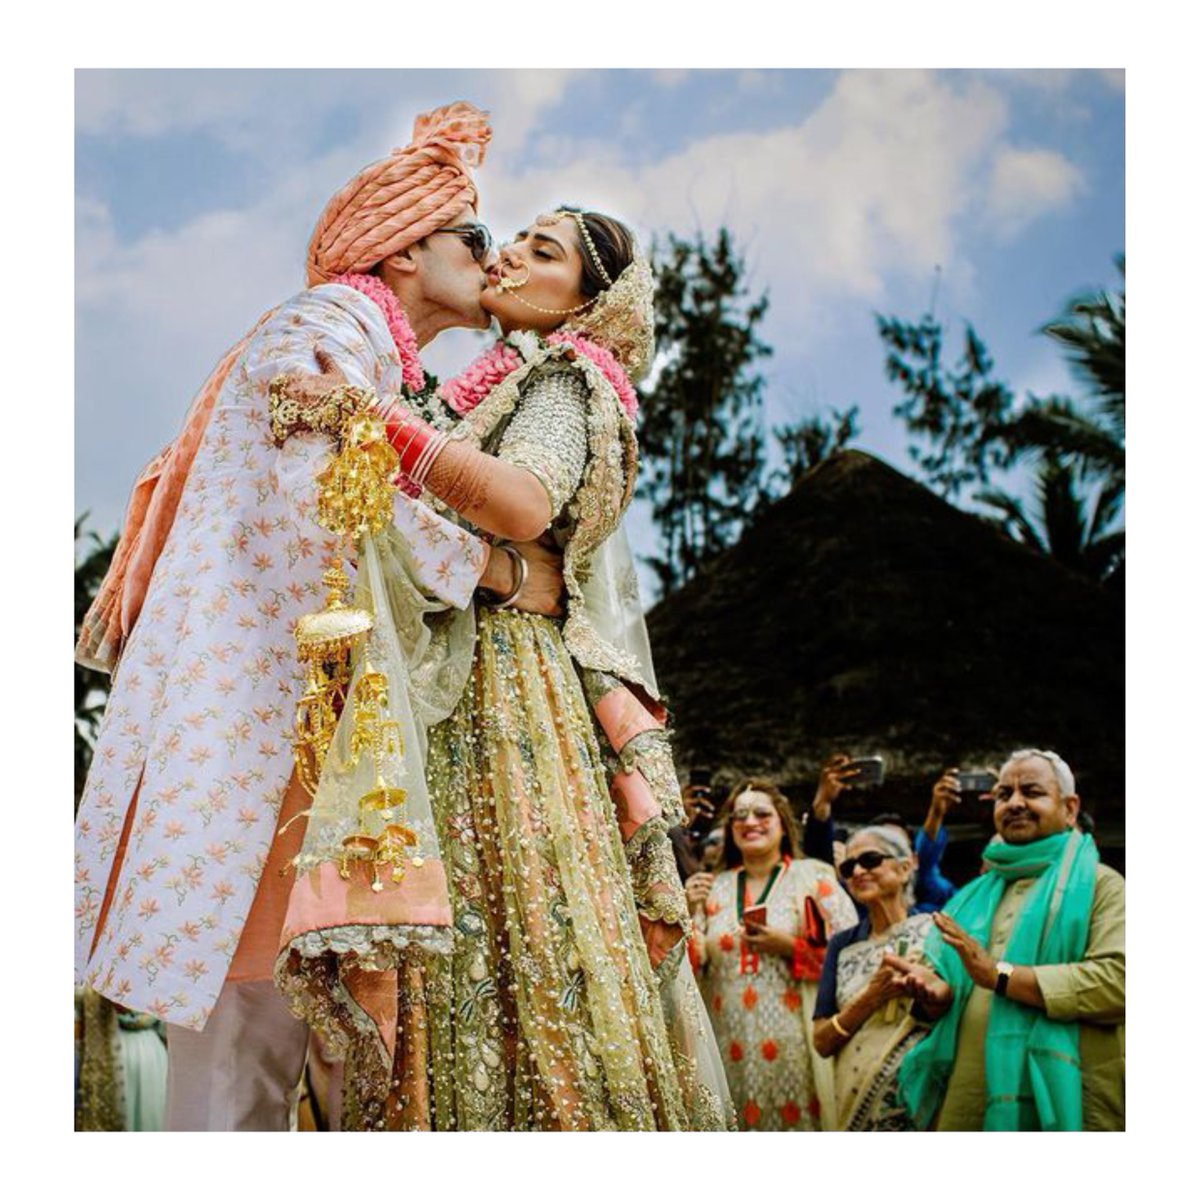 Seal with the deal with the kiss of life on your splendorous wedding day, surrounded by family and friends, at @theleelaravizkovalam at best deals & rates.  Call +91.88502.52867 to know more or DM us. 100% refund of booking amount in case of cancellation. *  #wedding #bride #love